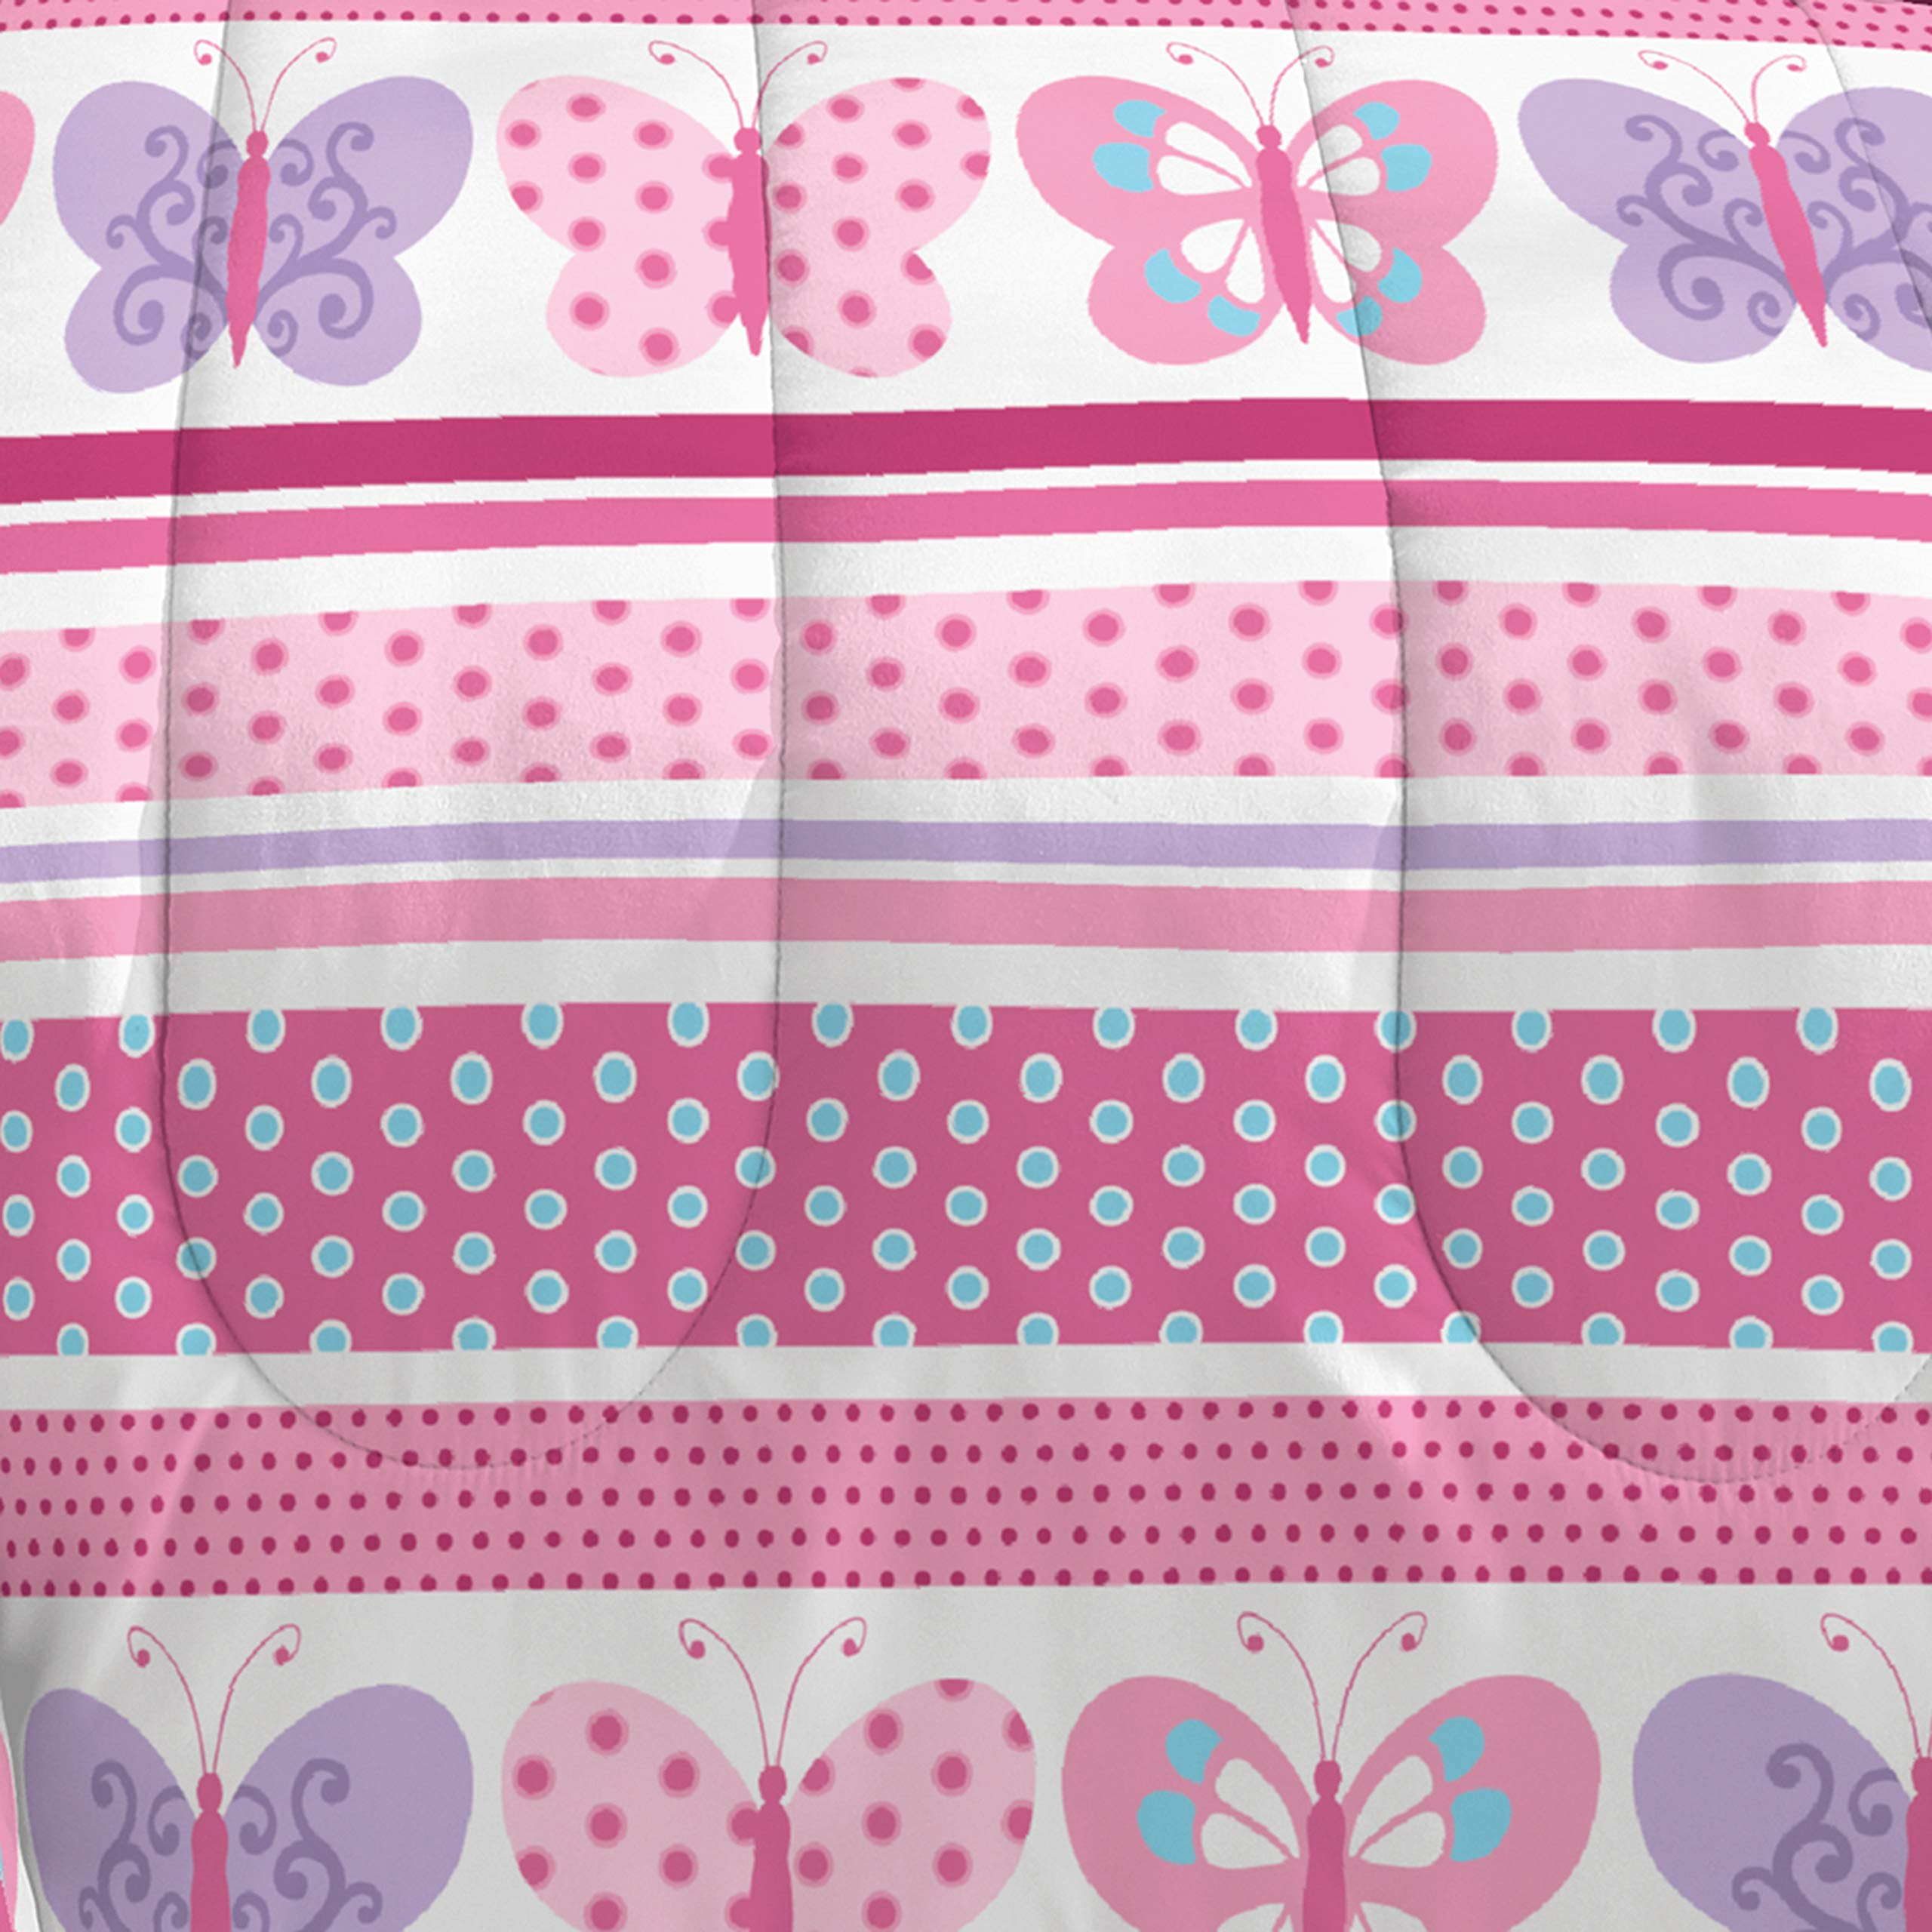 Dream Factory Butterfly Dots Ultra Soft Microfiber Girls Comforter Set, Pink, Twin by Dream Factory (Image #2)